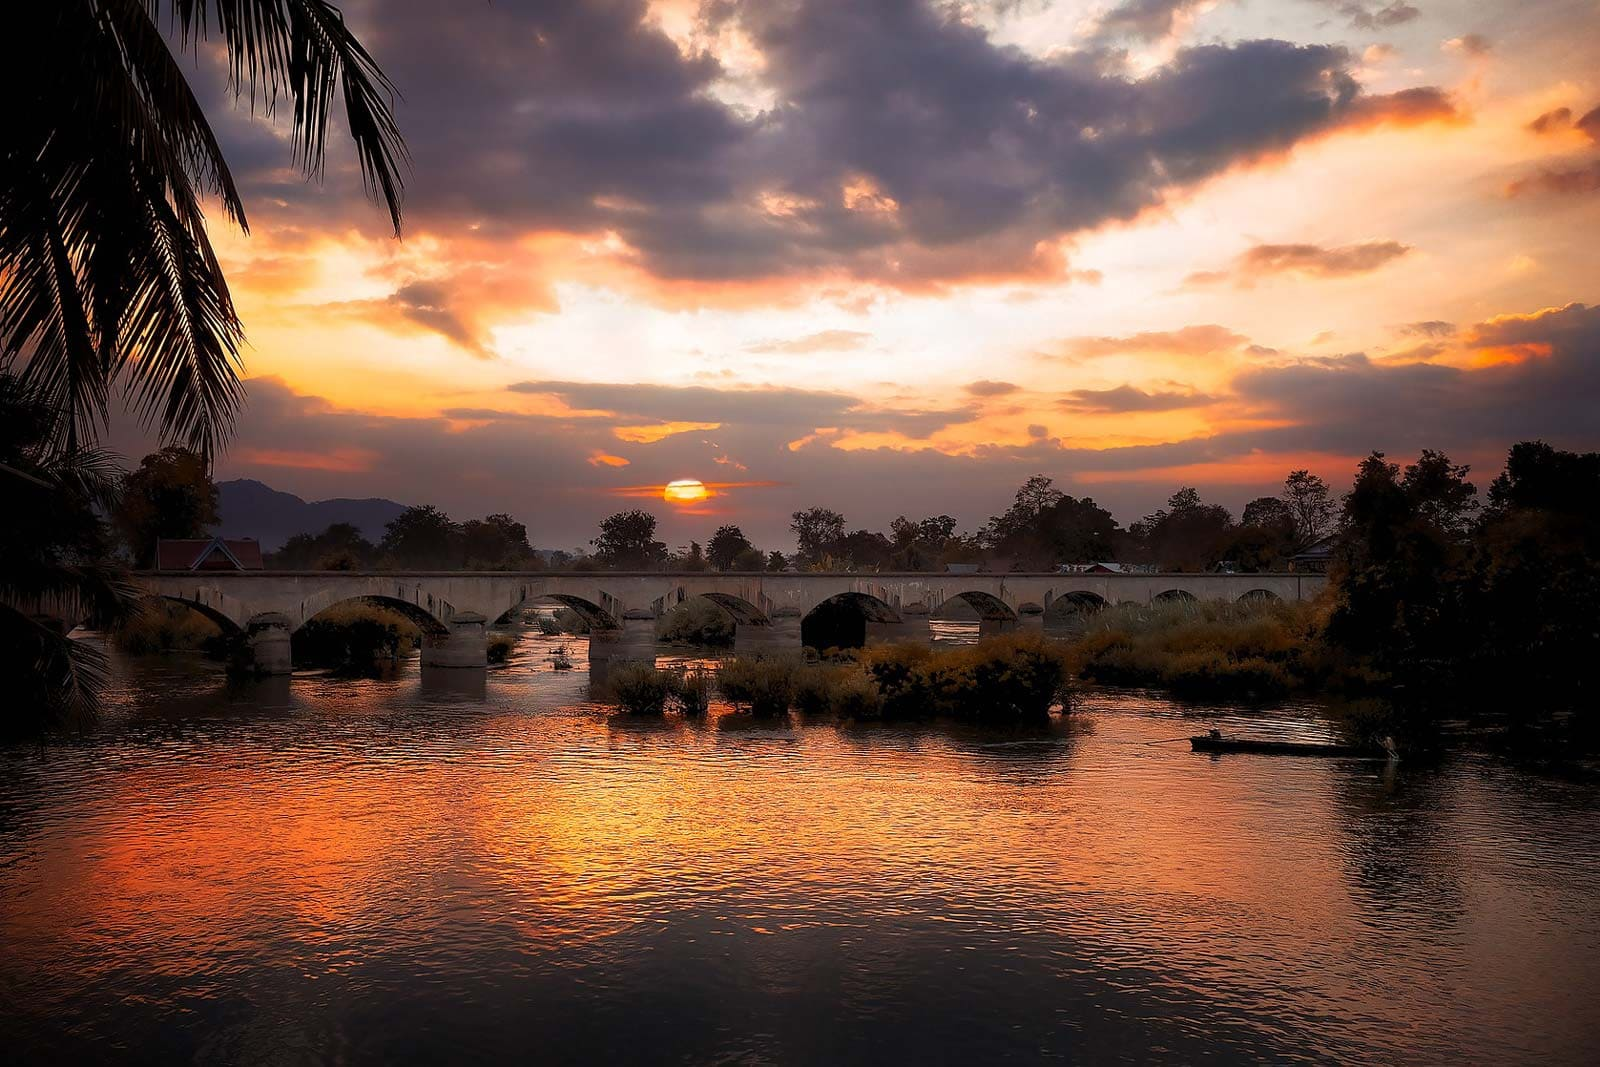 Bridge Sunset Mekong Delta South Vietnam